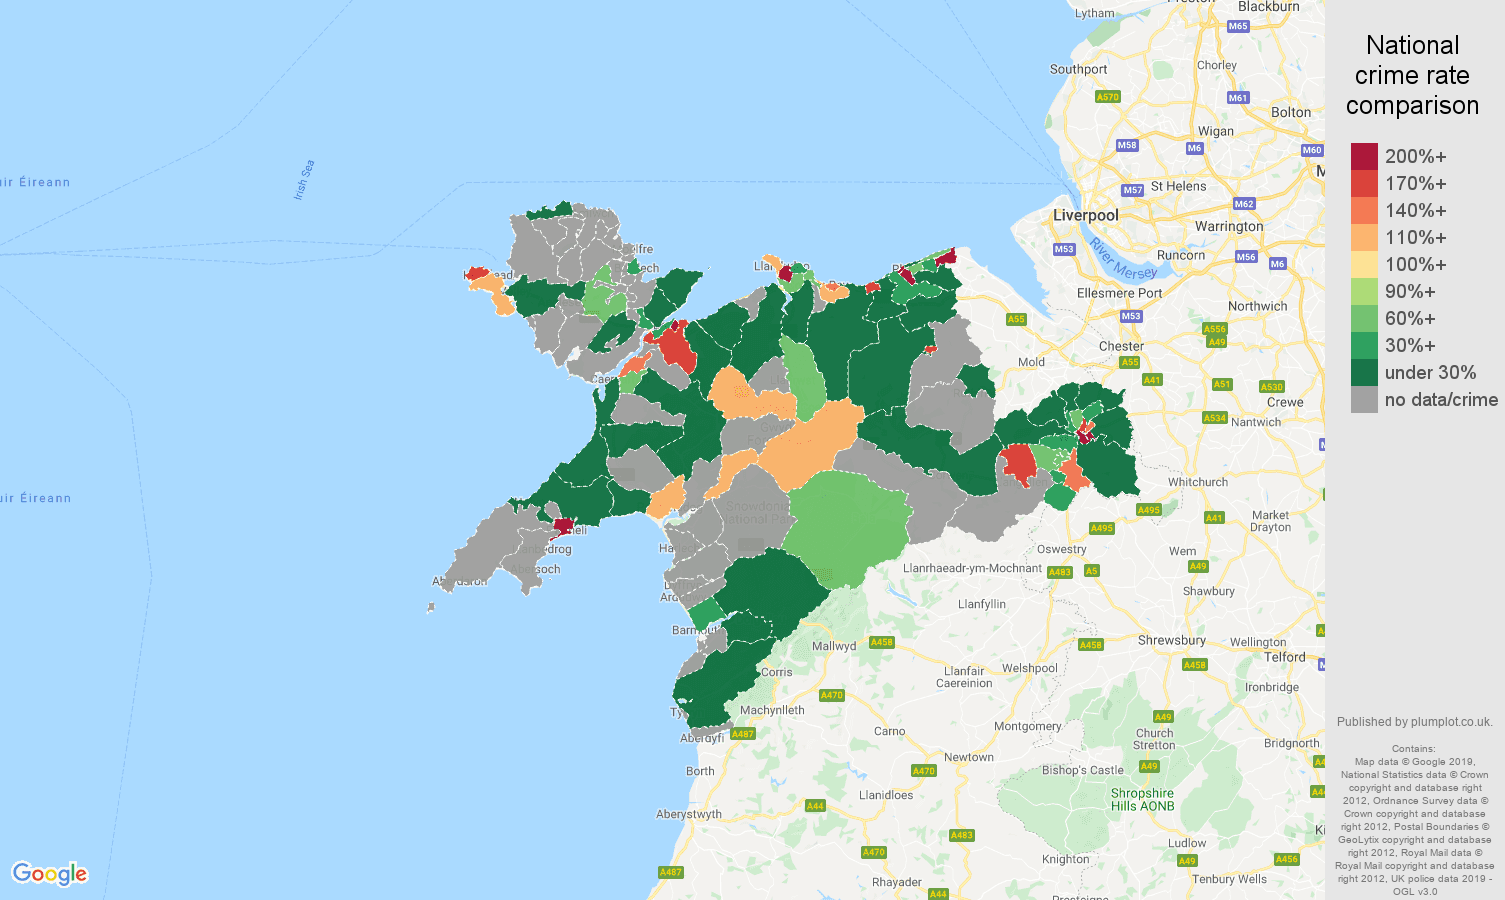 Llandudno shoplifting crime rate comparison map